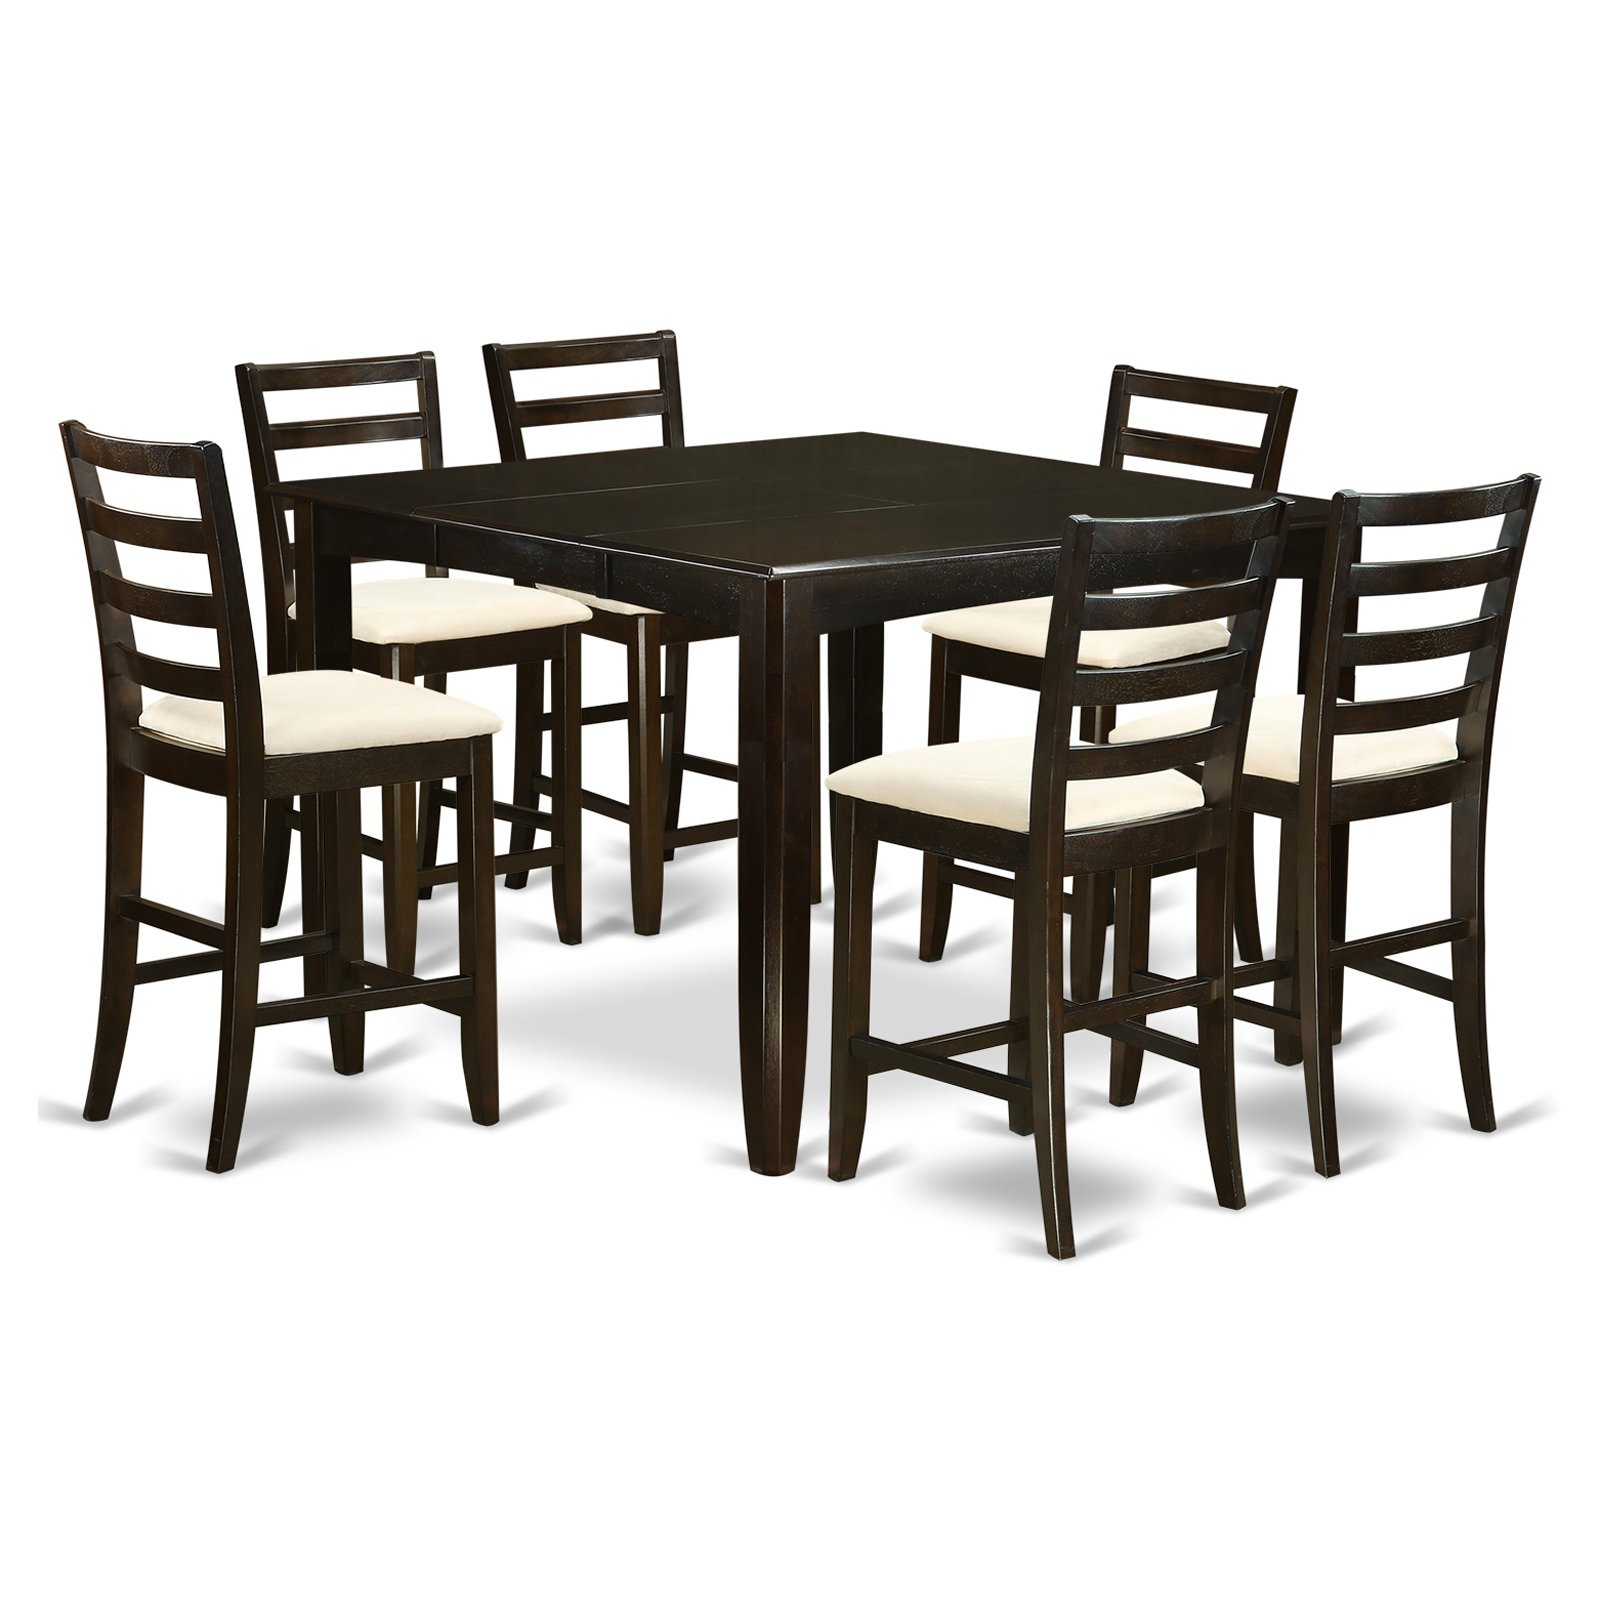 East West Furniture Fairwinds 7 Piece Ladder Back Dining Table Set